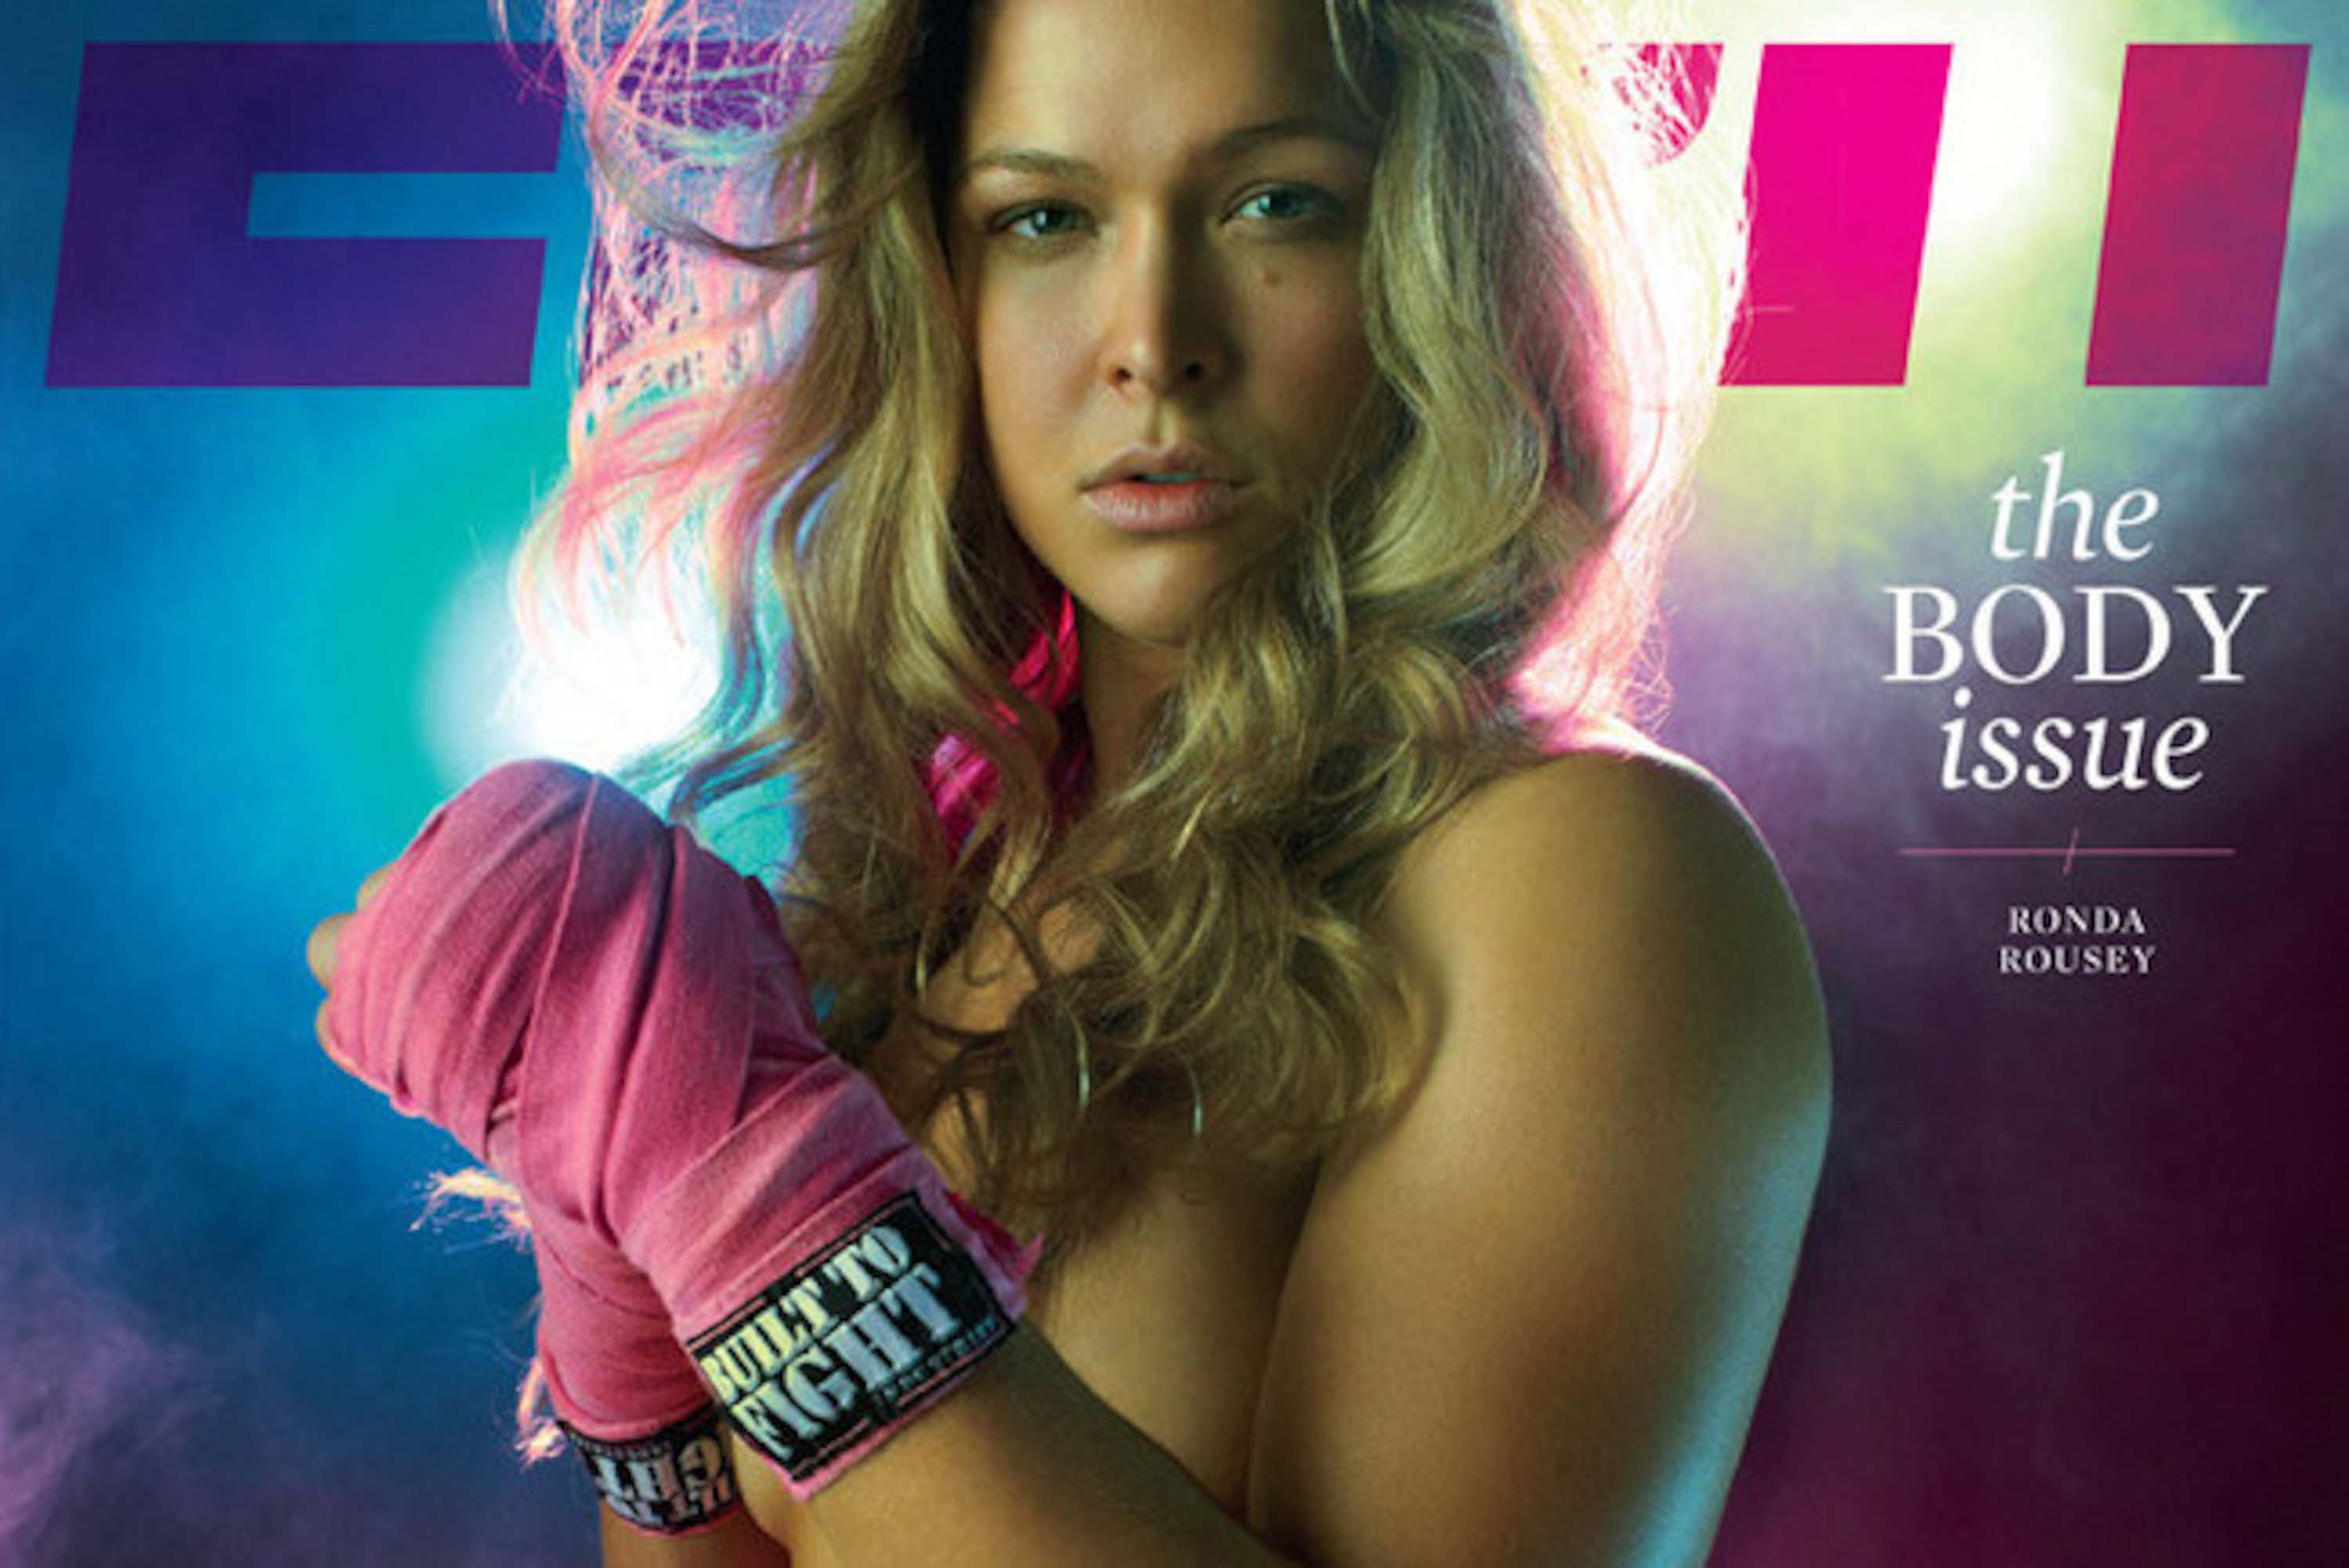 Ufc Womens Bantamweight Champ Ronda Rousey For The Espn Body Issue Last Year